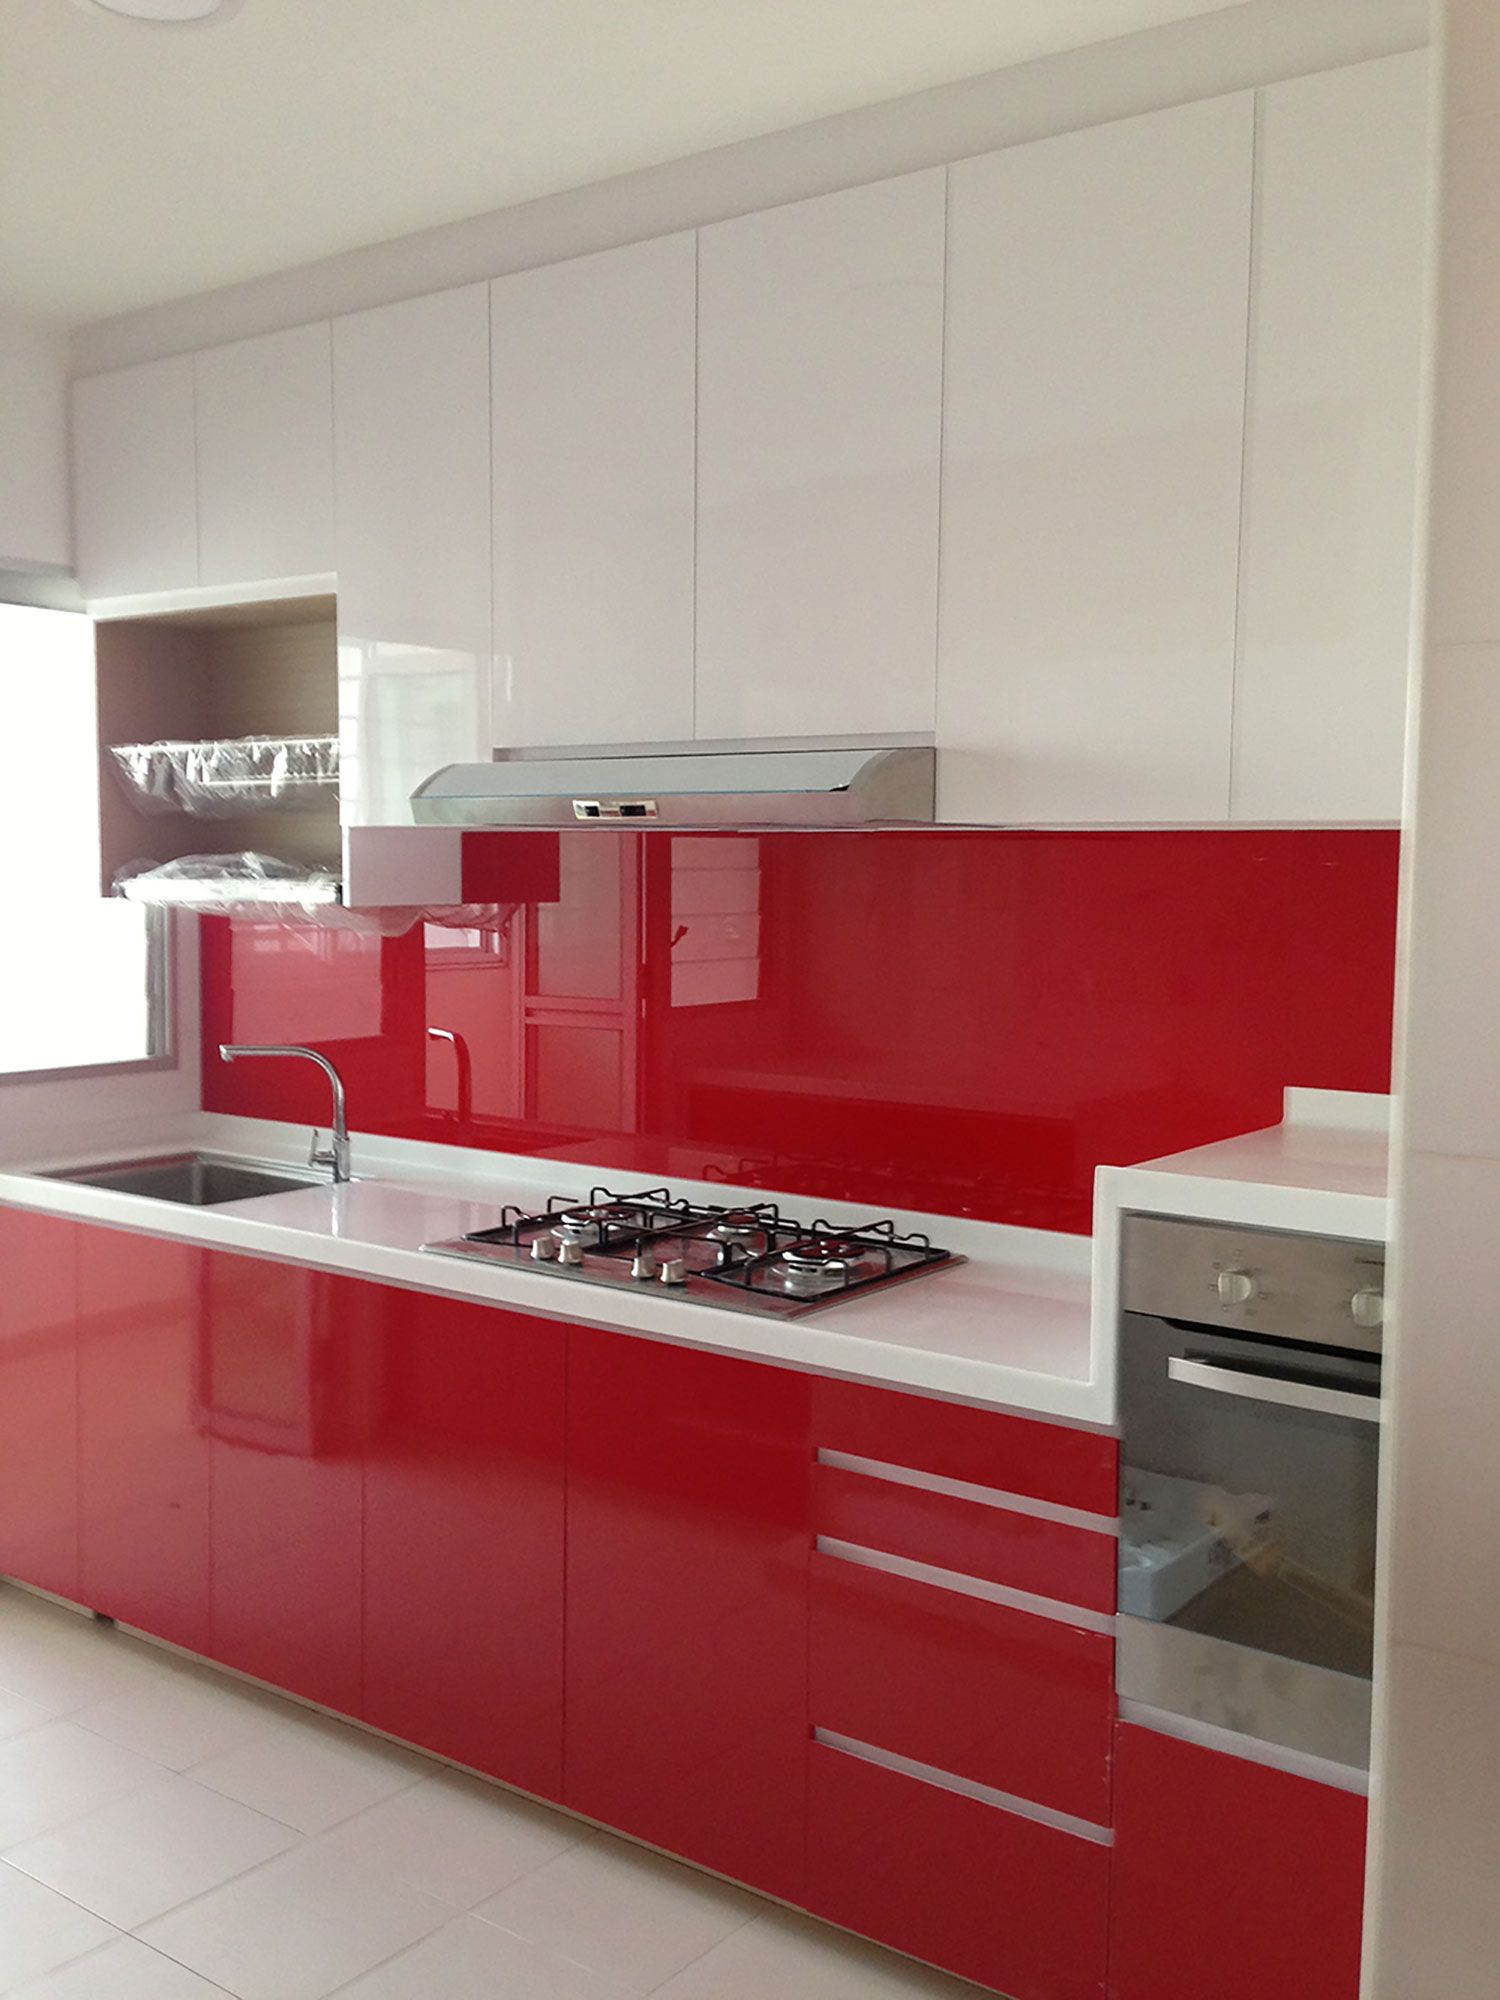 One Kitchen Cabinet kitchen on discount! i'm thinking that adding one colour to the